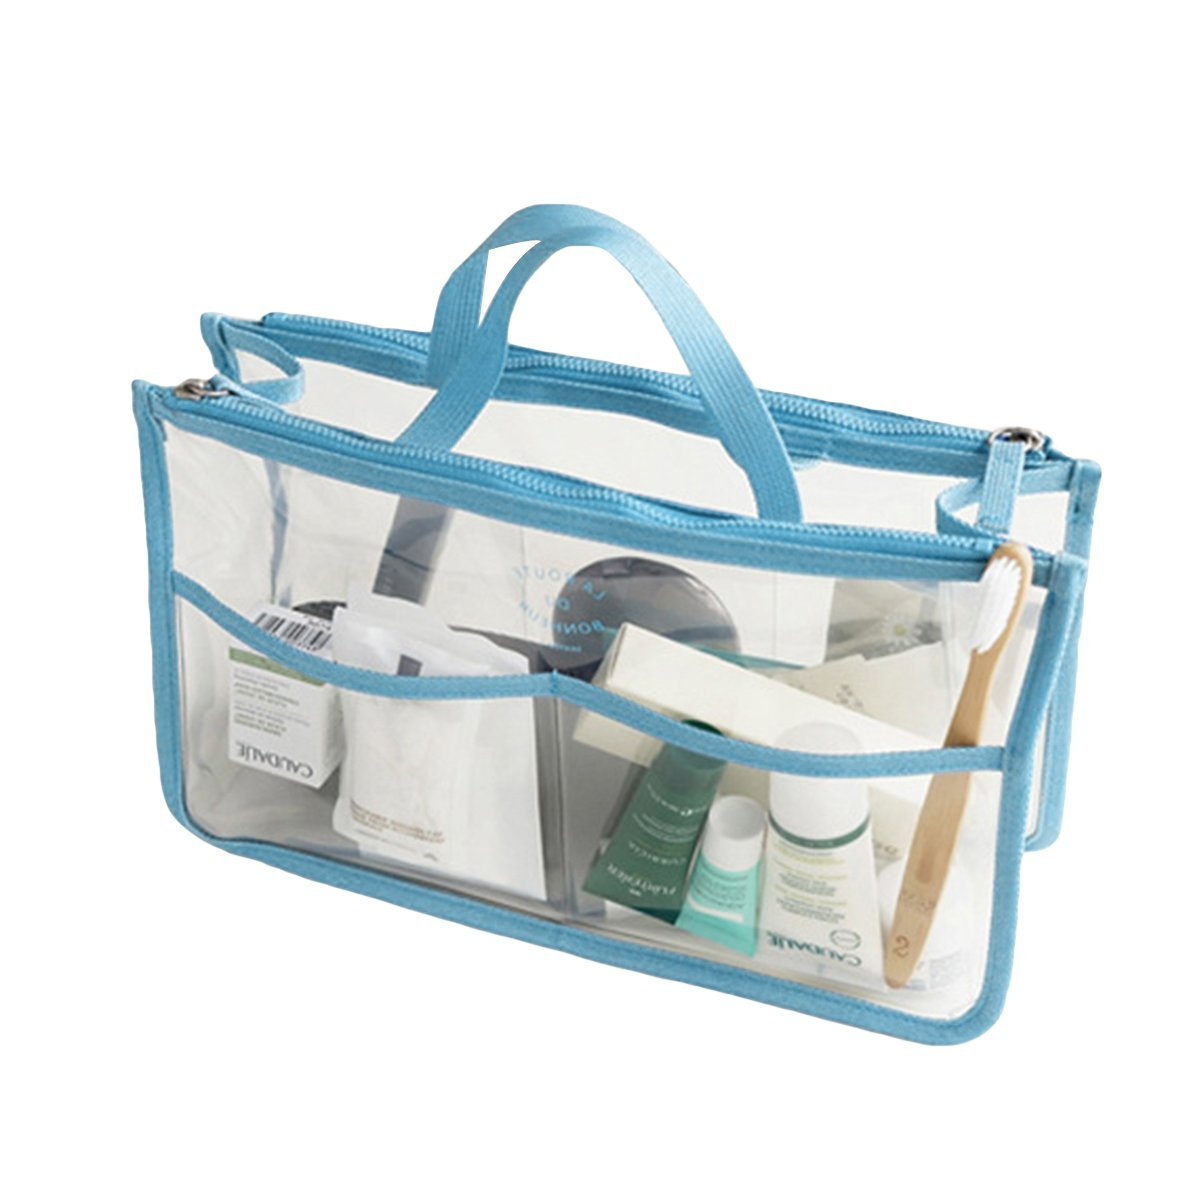 Deacroy Clear Handbag Purse Tote Insert Organizer 8 Pockets with Zipper and Handles, Skyblue